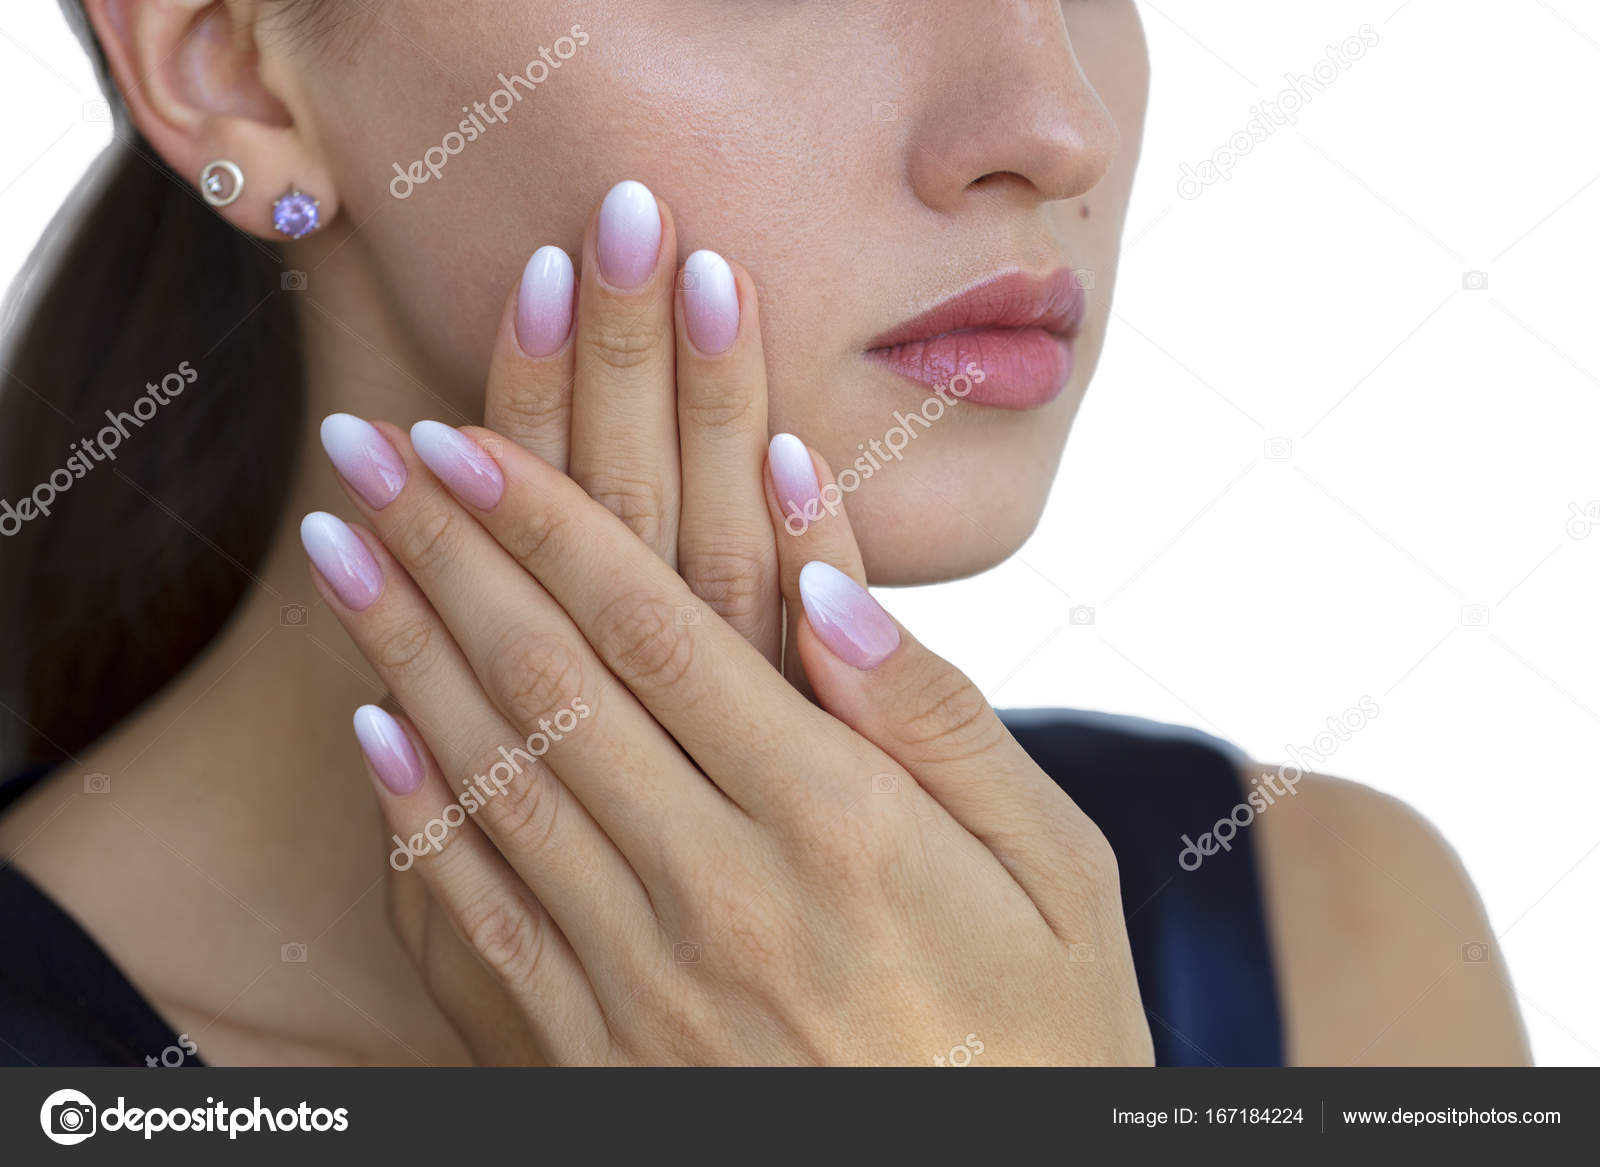 Images Ombre Nails Beautiful Woman S Nails With Beautiful